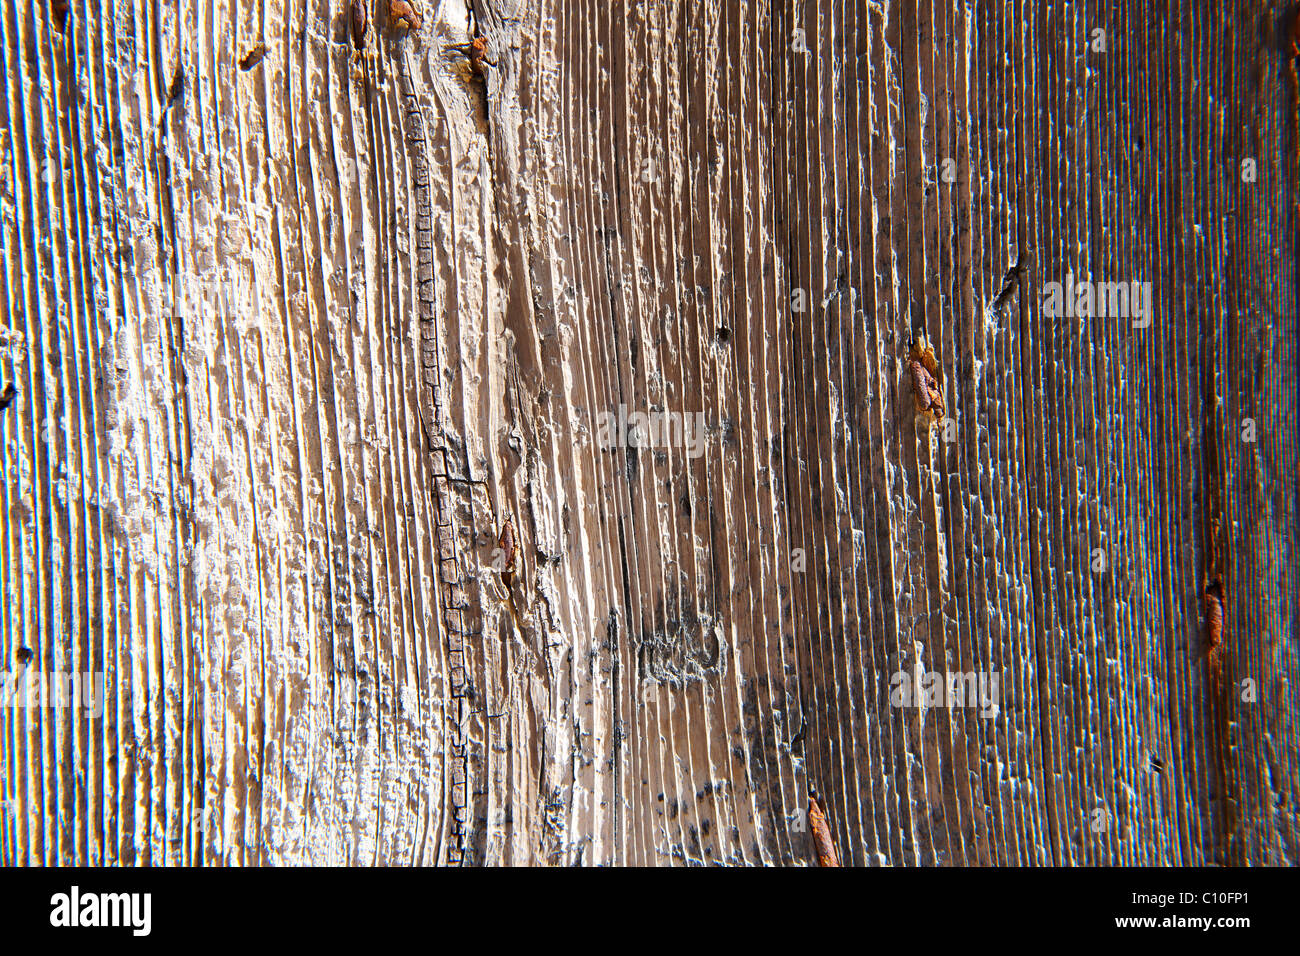 rustic weathered wood close up background - Stock Image